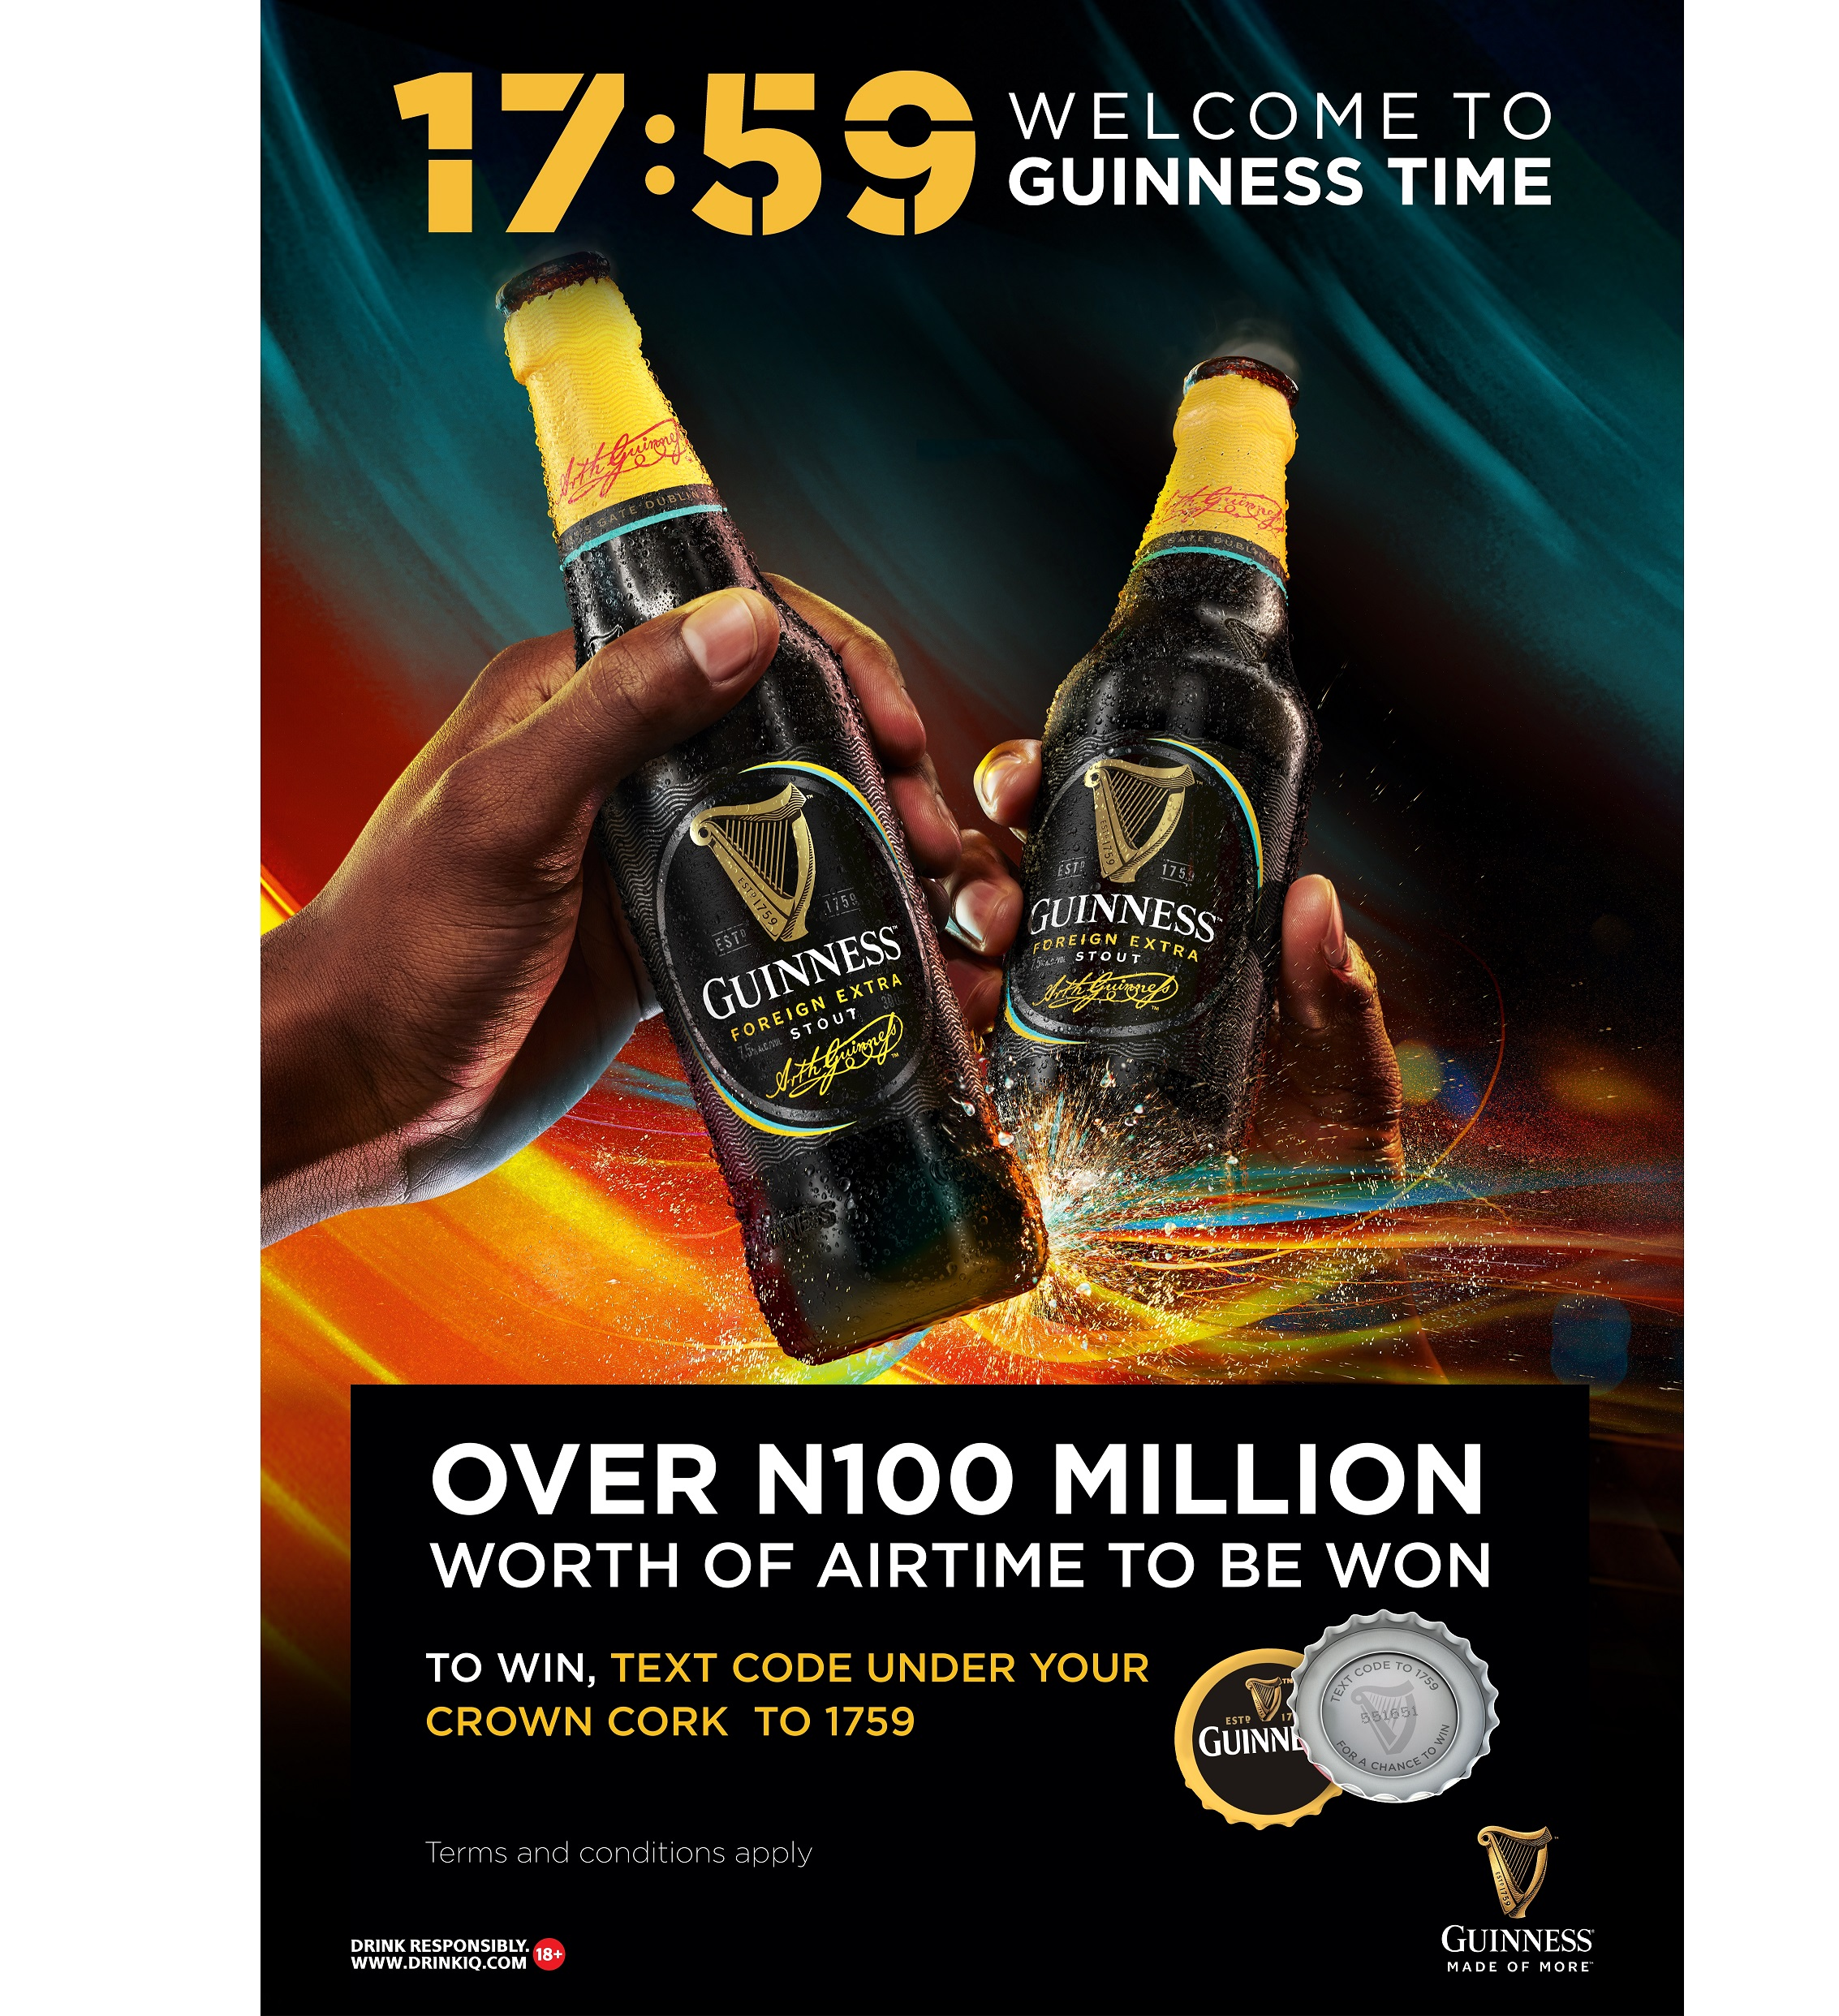 Guinness Foreign Extra Stout 17:59 Promo